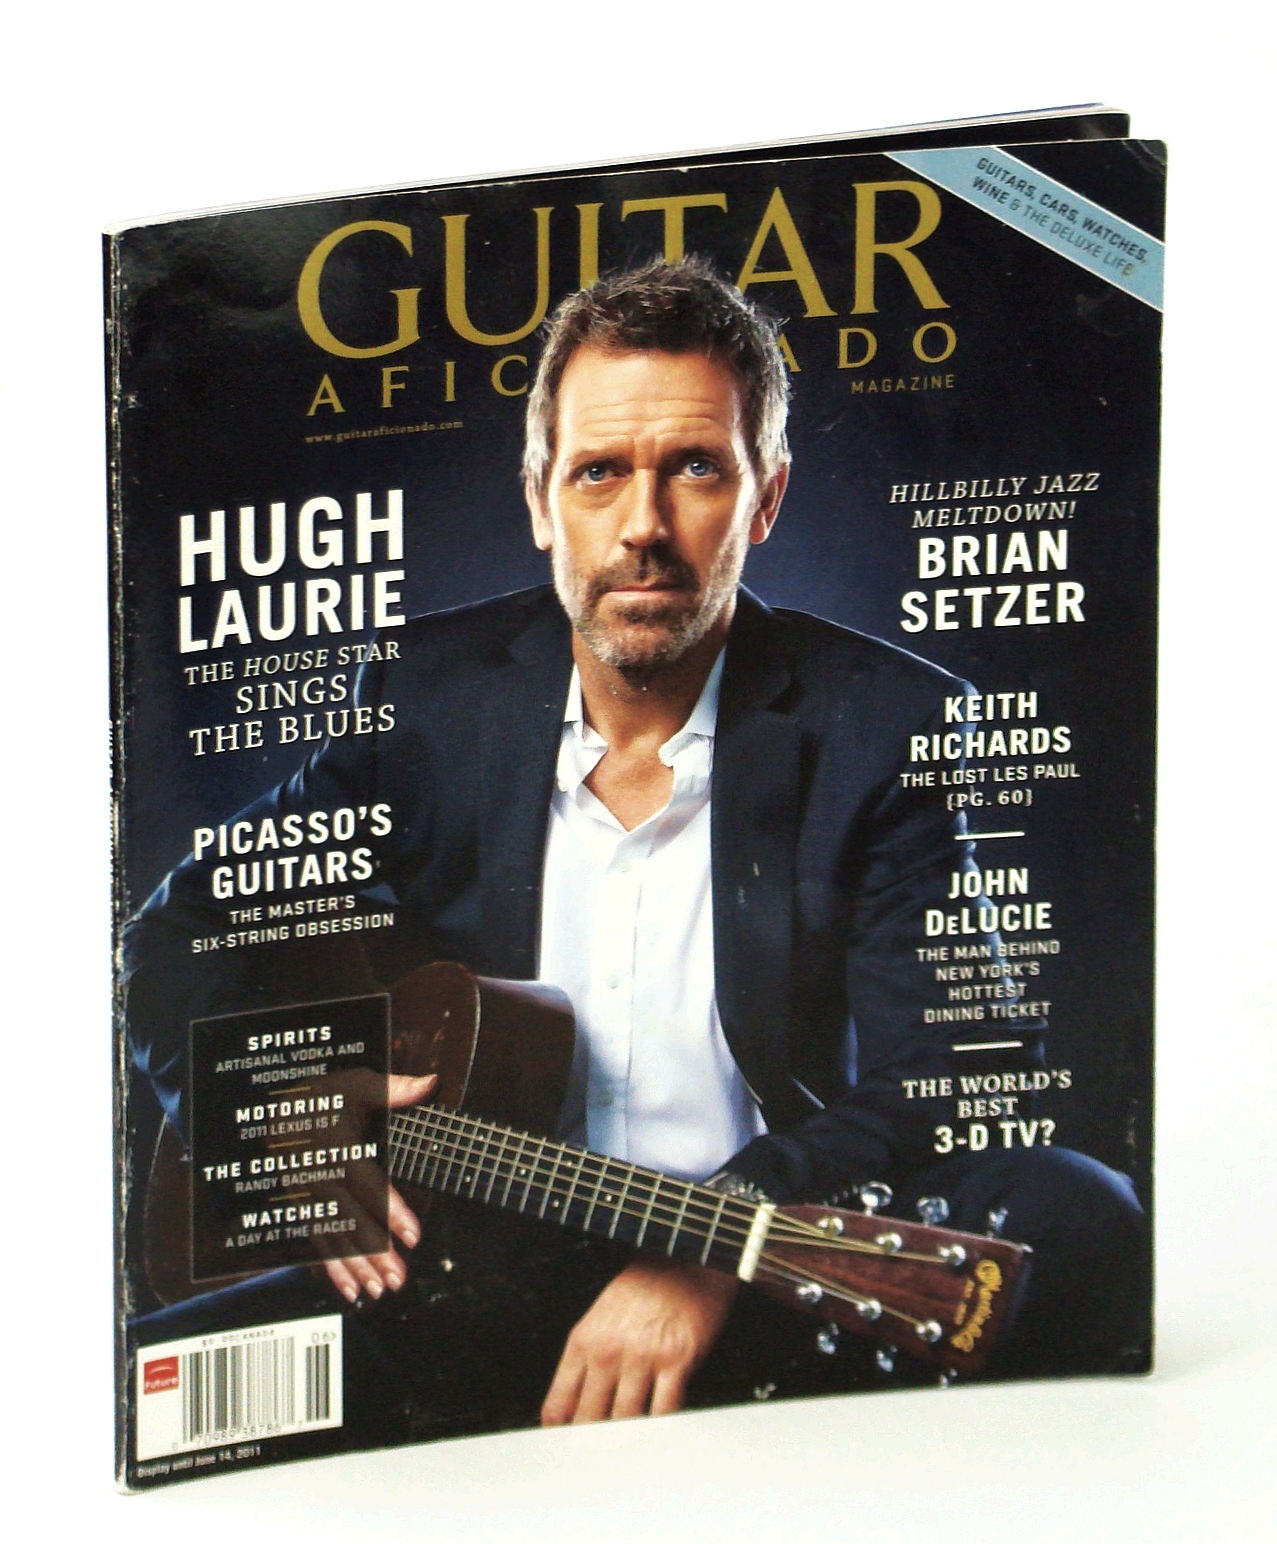 Image for Guitar Aficionado Magazine, May/June 2011-Hugh Laurie-The'House' Star Sings the Blues.